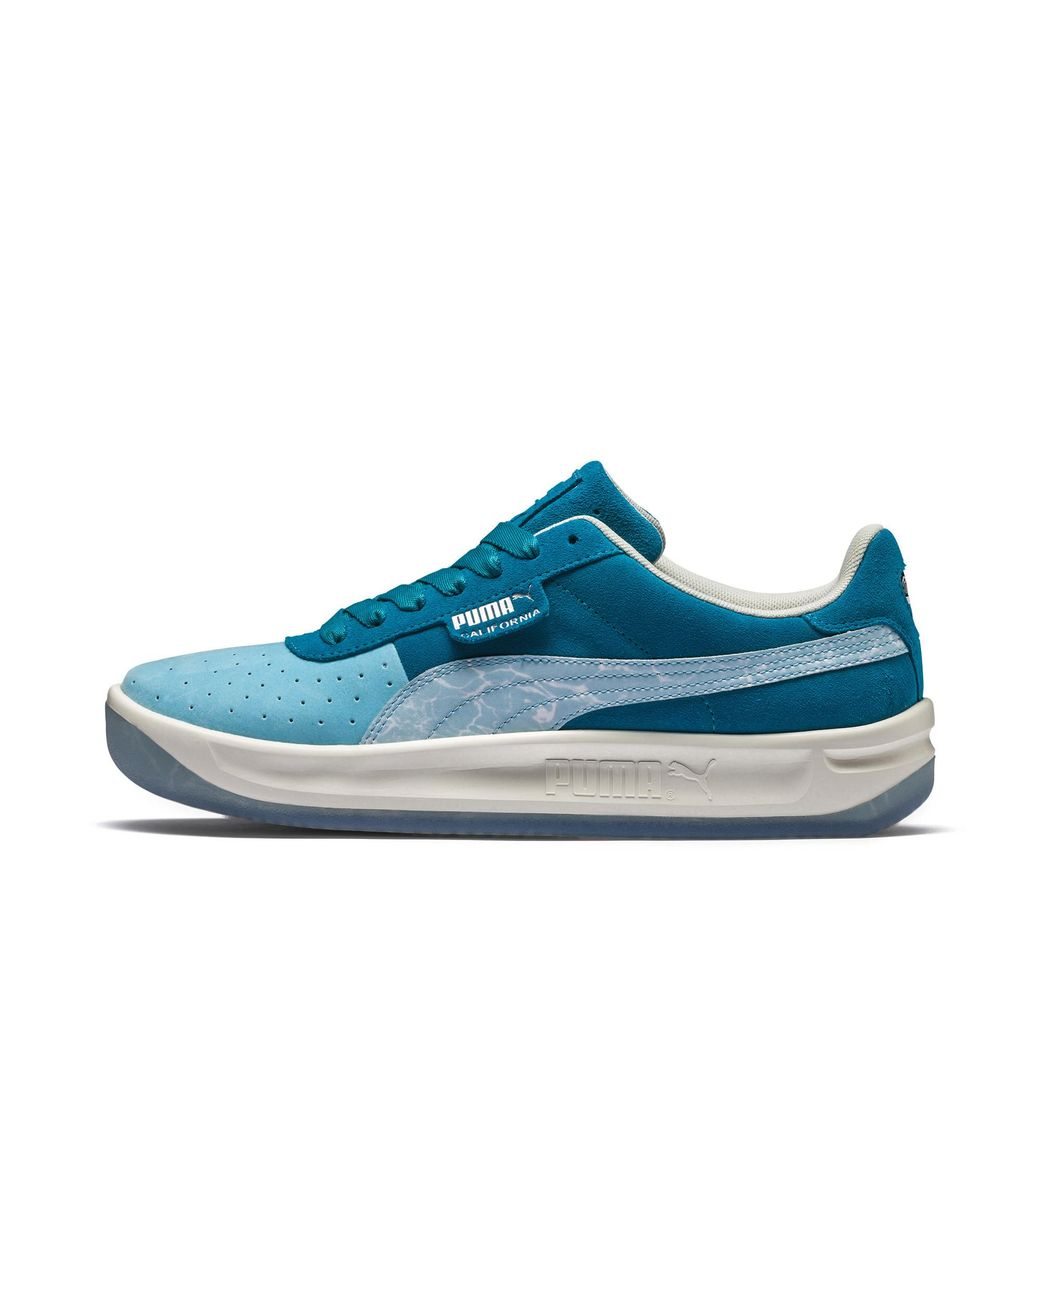 7dadc8eee1 Lyst - PUMA California Pool Sneakers in Blue for Men